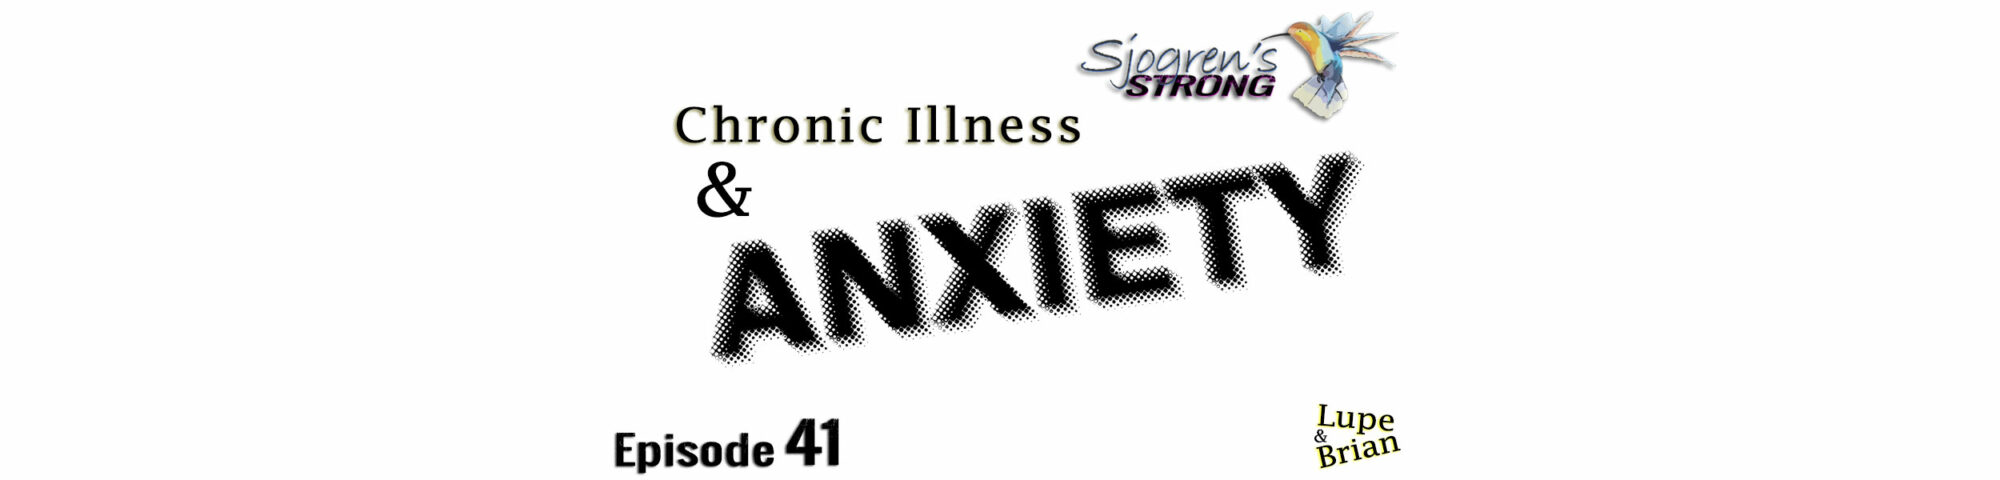 Chronic Illness and Anxiety, Episode 41, Sjogrens Strong